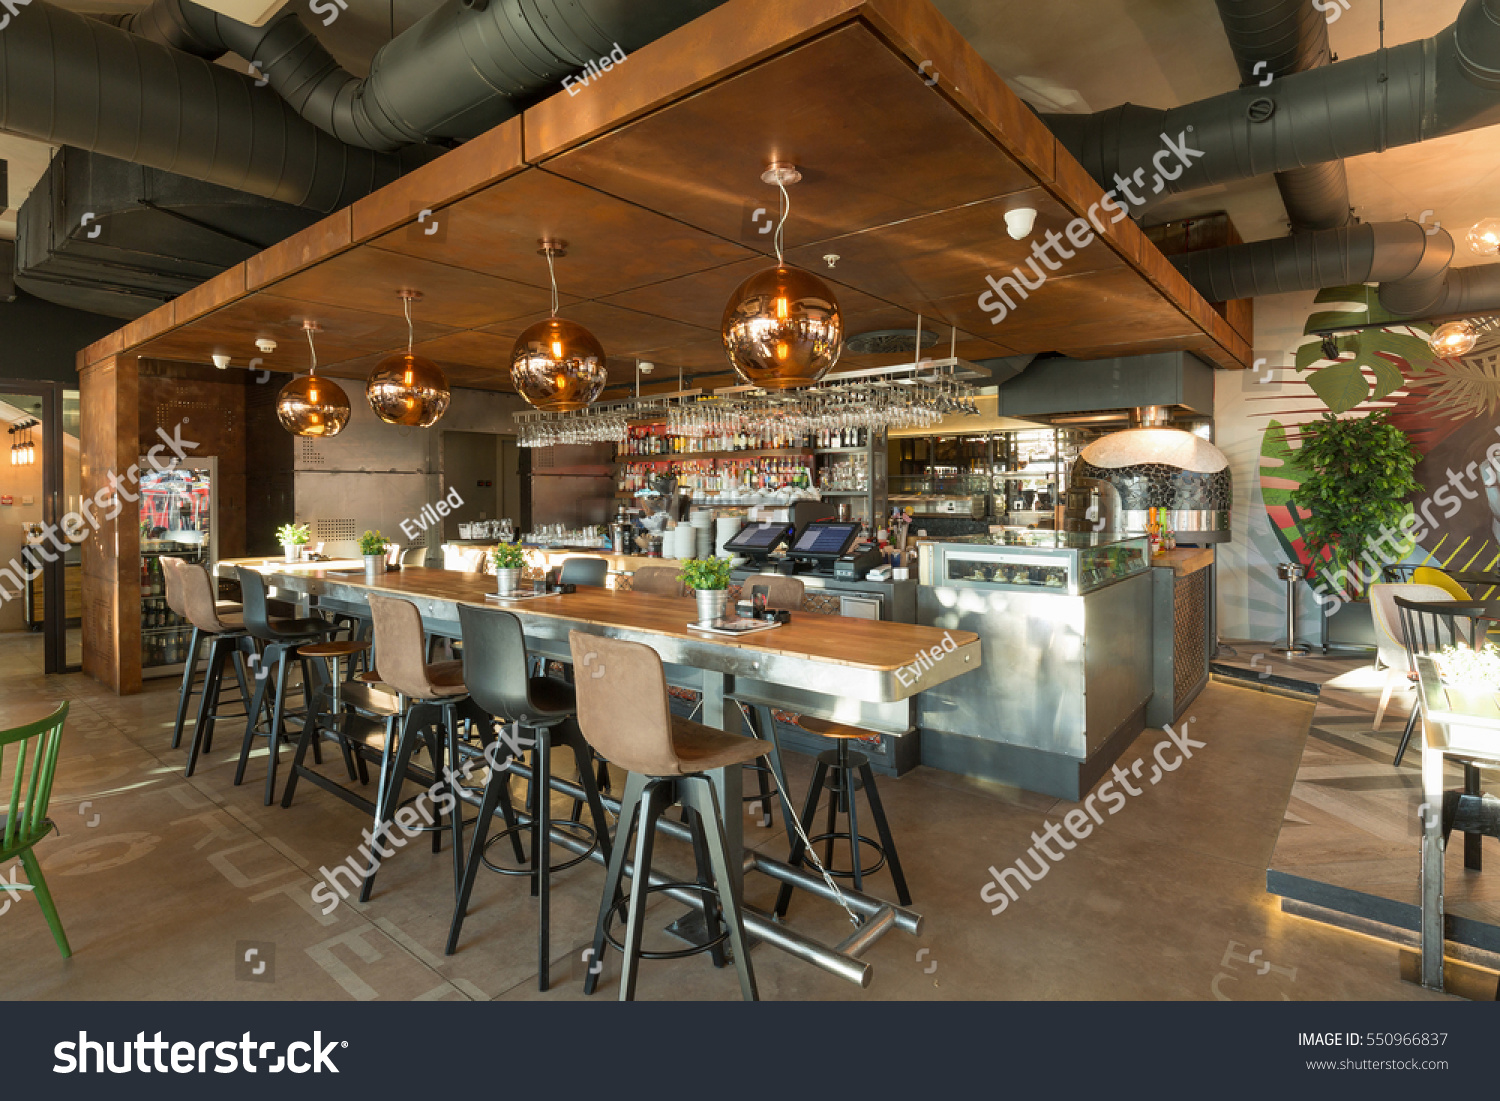 Bar counter restaurant interior stock photo